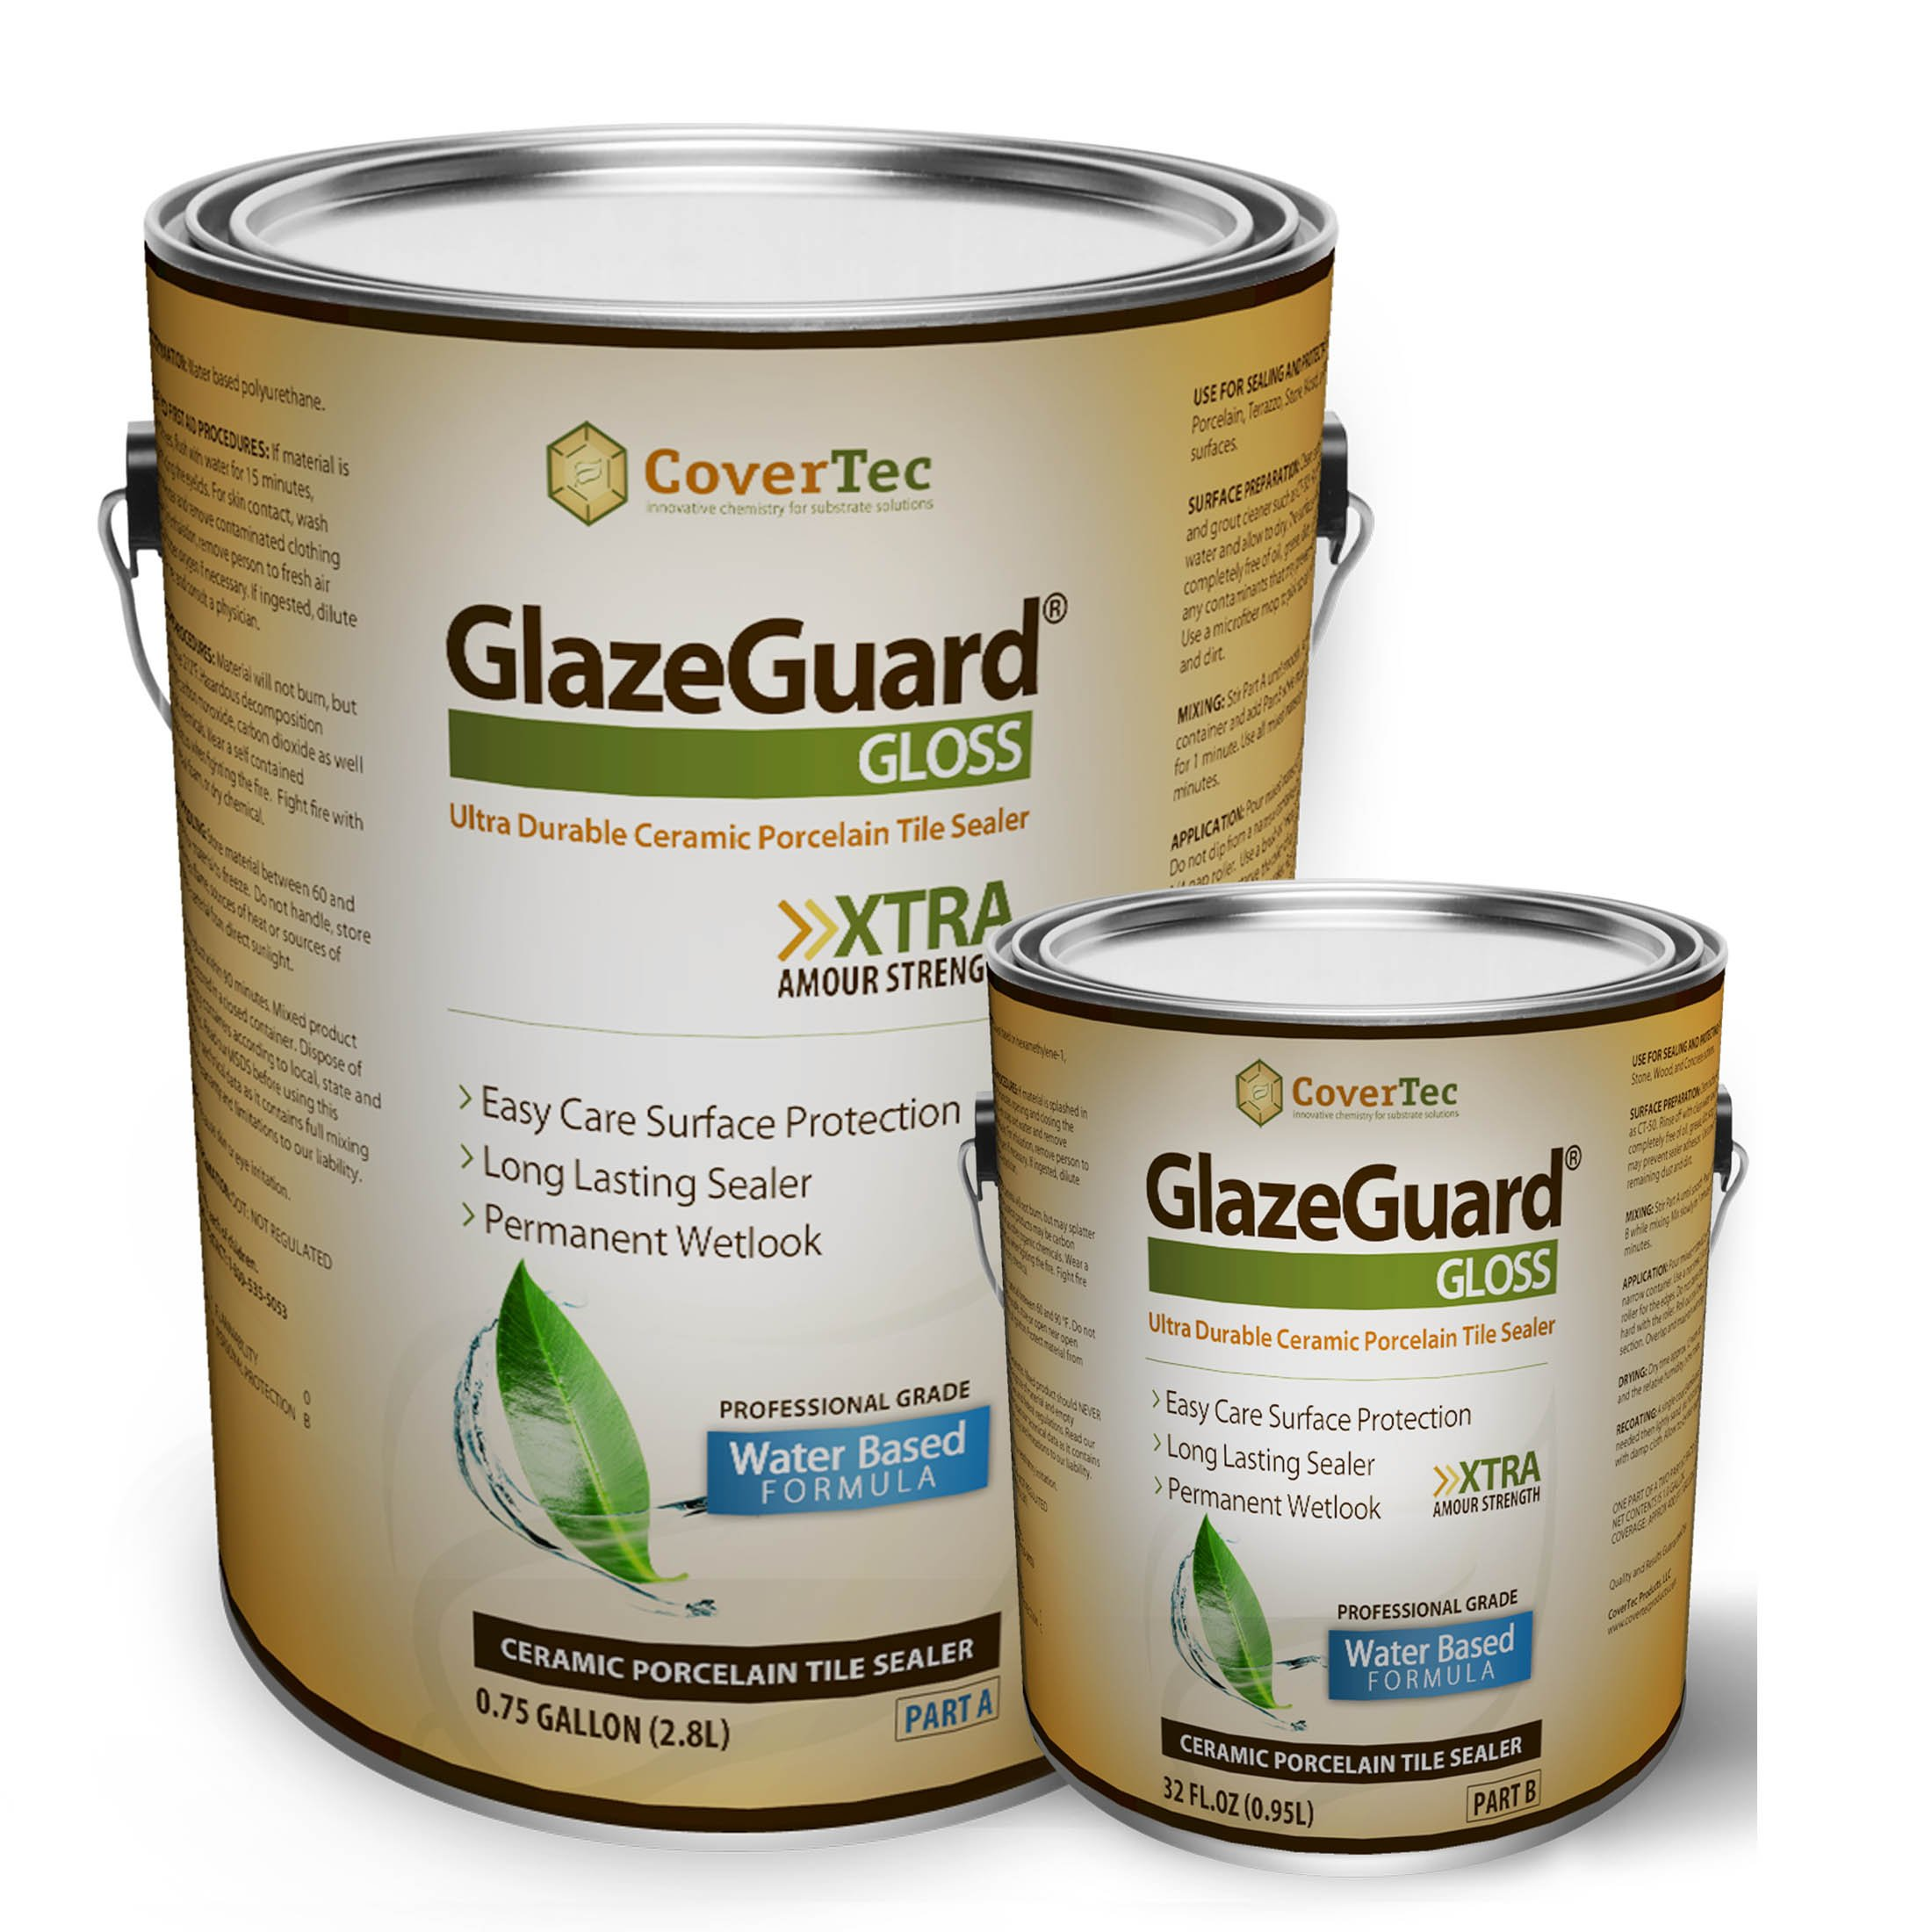 GlazeGuard Gloss Floor Sealer Wall Sealer for Ceramic, Porcelain, Stone Tile Surfaces (1 Gal -Prof Grade (2) Part Kit)